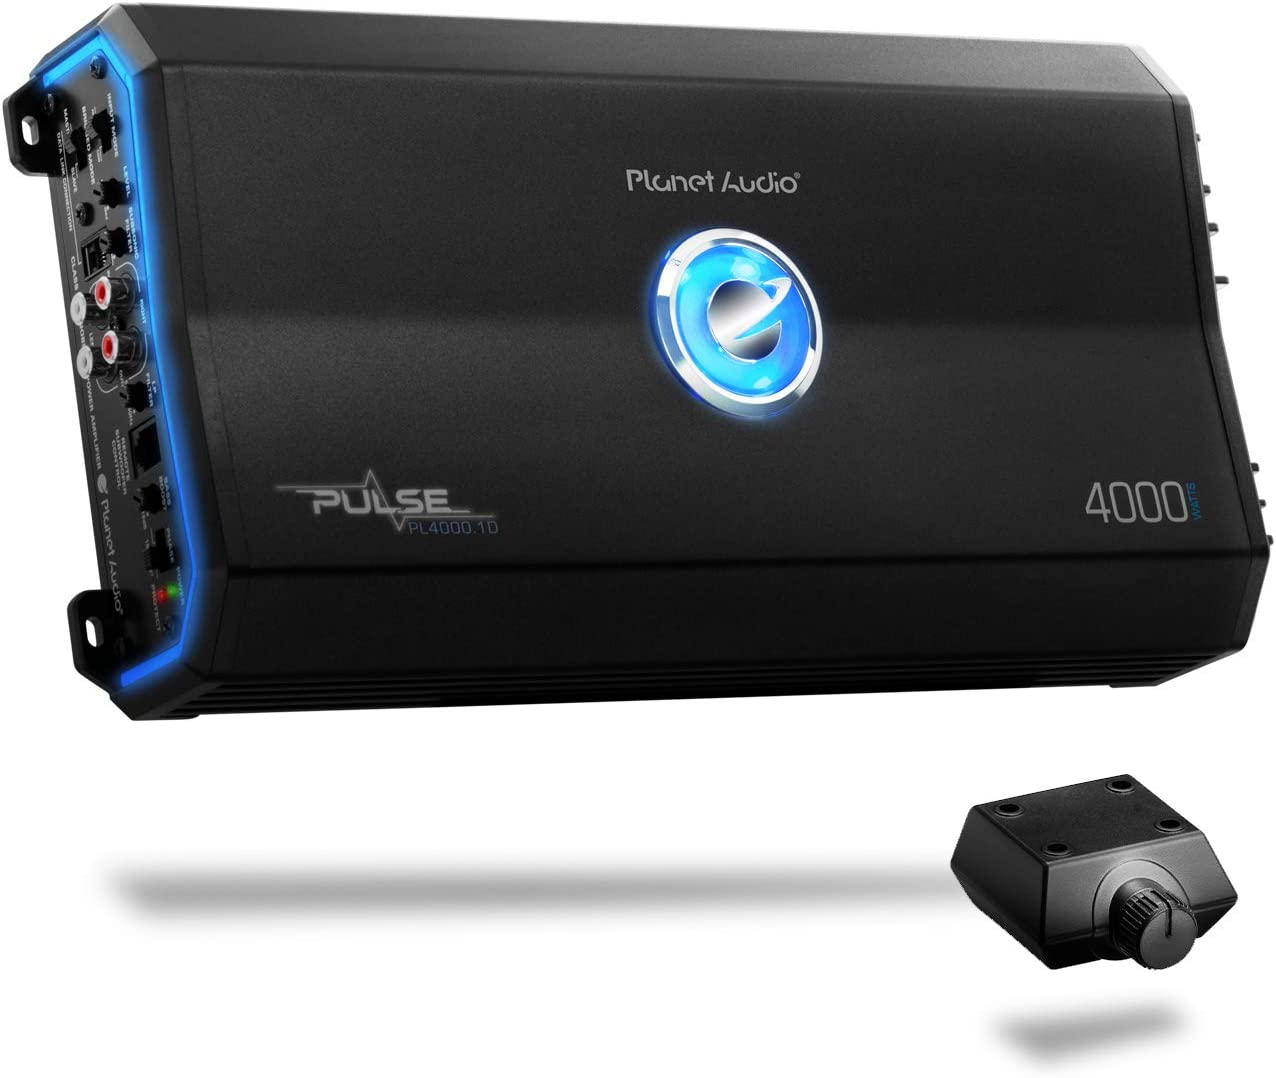 Planet Audio PL4000.1D Class D Car Amplifier - 4000 Watts, 1 Ohm Stable, Digital, Monoblock, Mosfet Power Supply, Great for Subwoofers